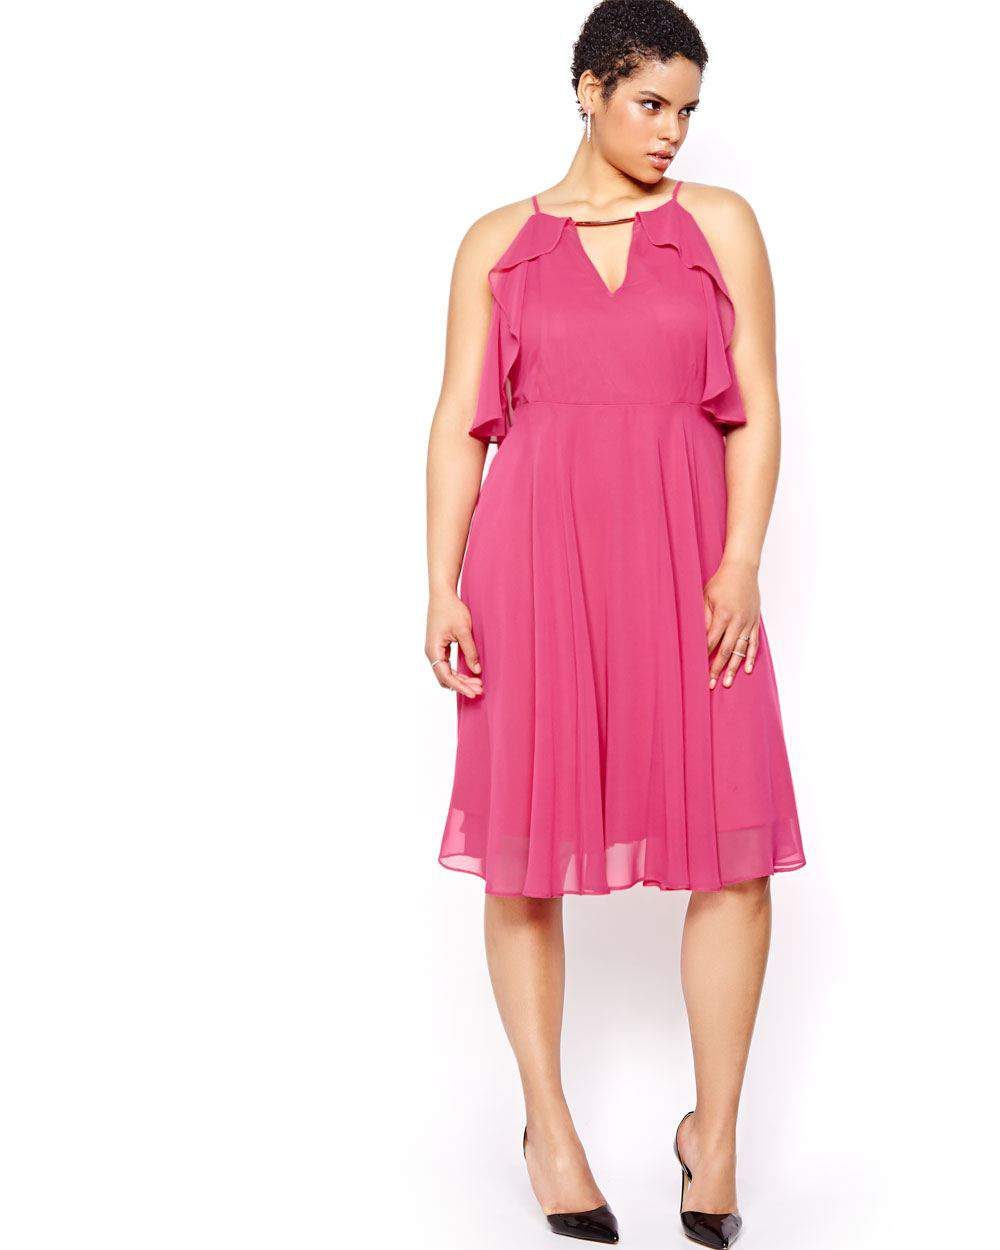 What to Wear to an Evening Wedding- Michel Studio Solid Fit & Flare Dress with Ruffles